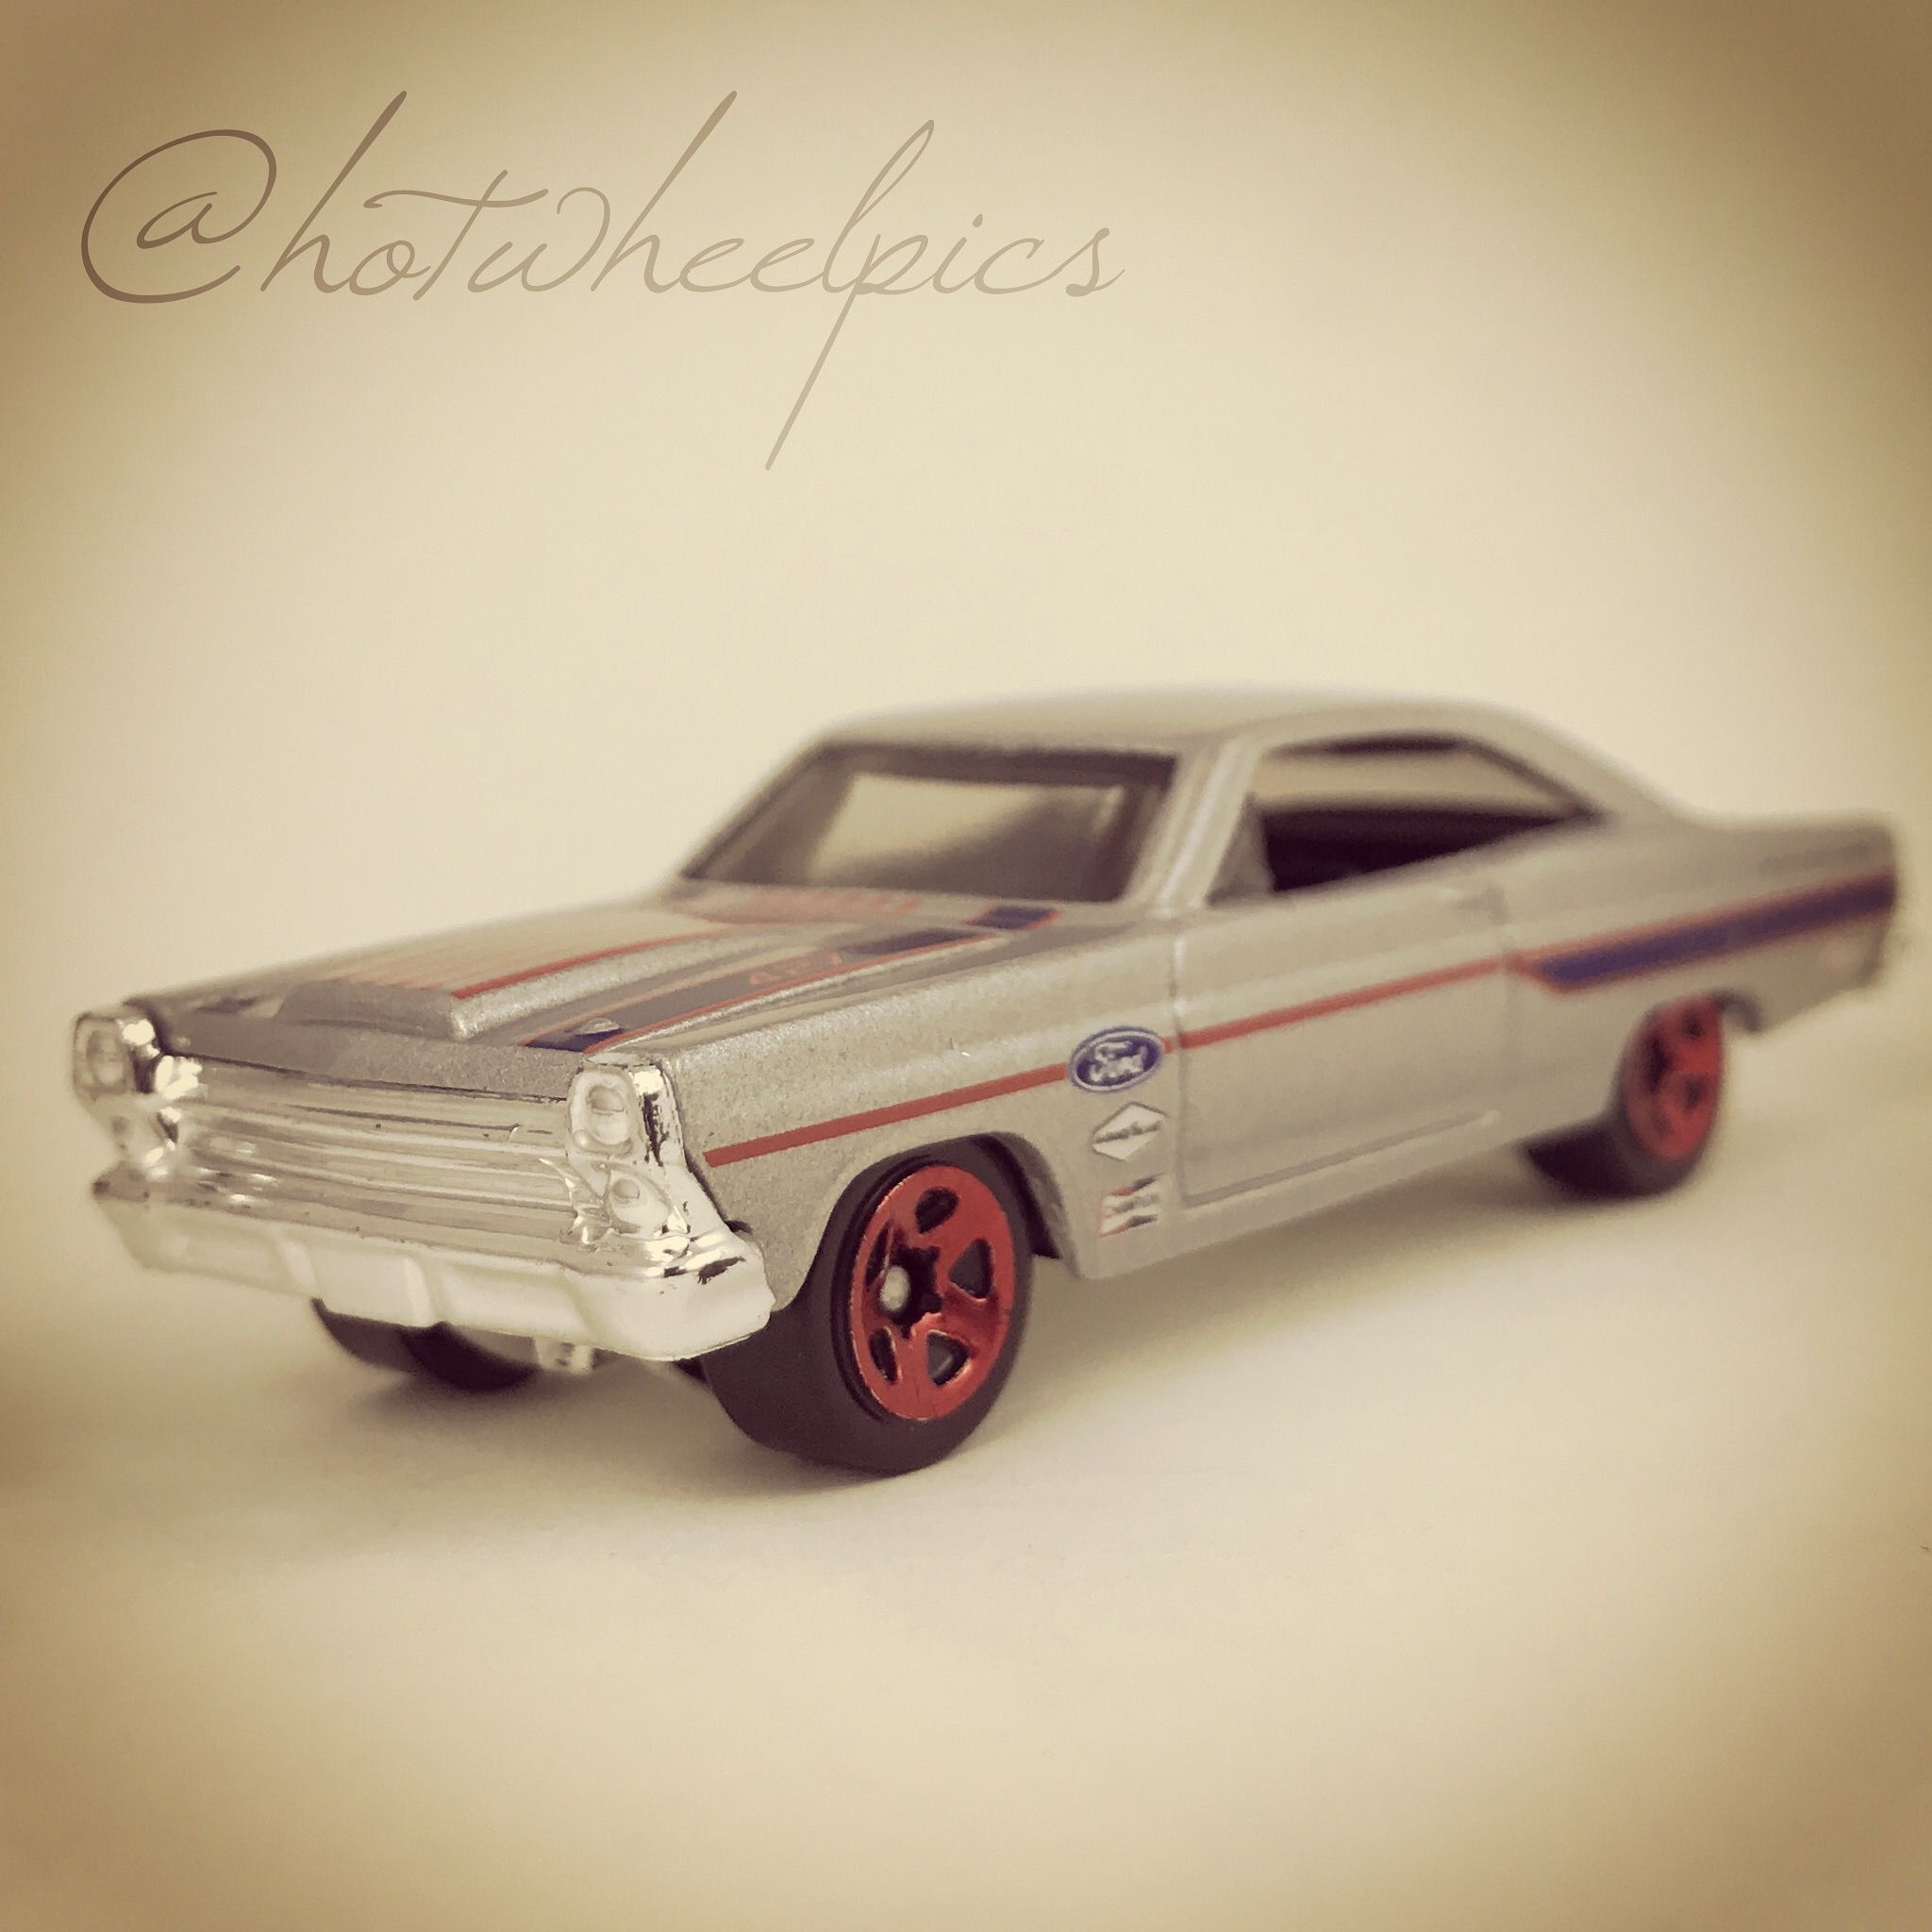 66 ford fairlane 2017 hot wheels american vintage muscle diecast